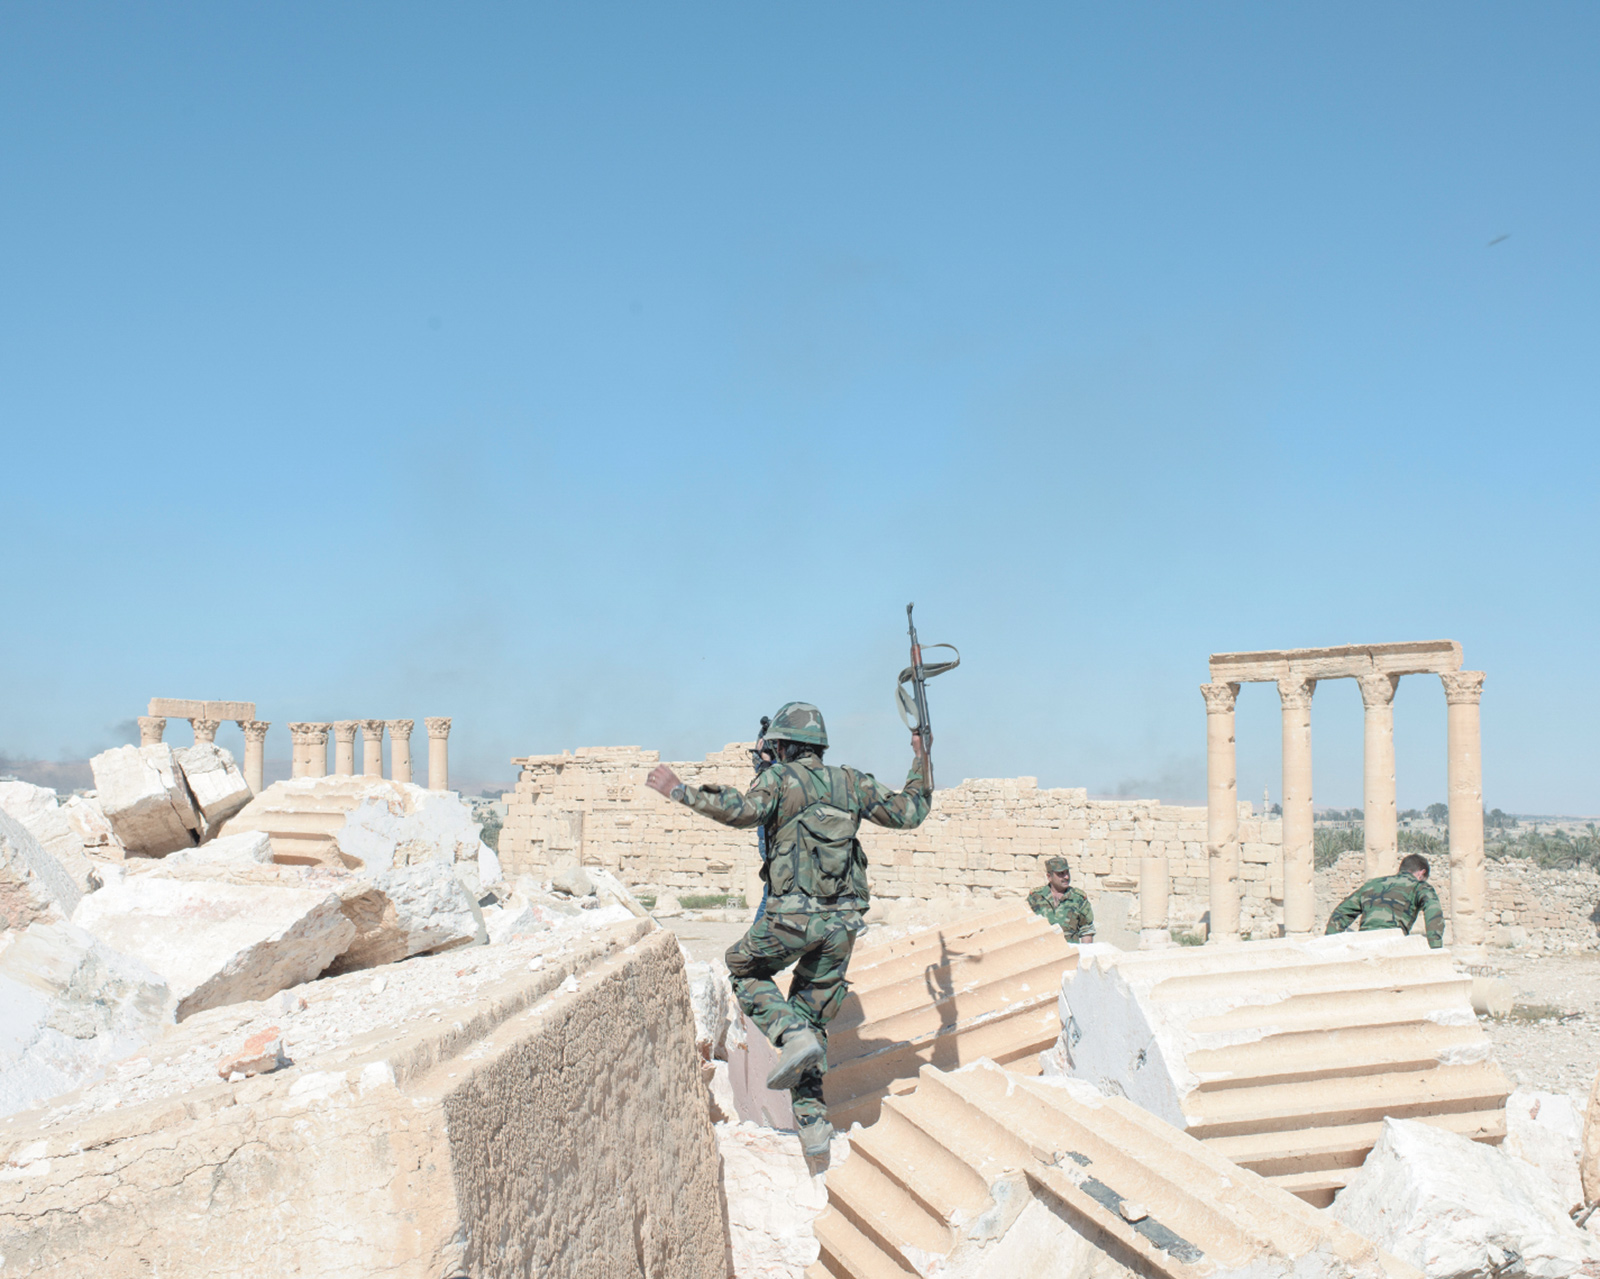 Syrian Army soldiers at the ruins of the Temple of Bel after retaking the destroyed ancient city of Palmyra from Islamic State militants, April 2016